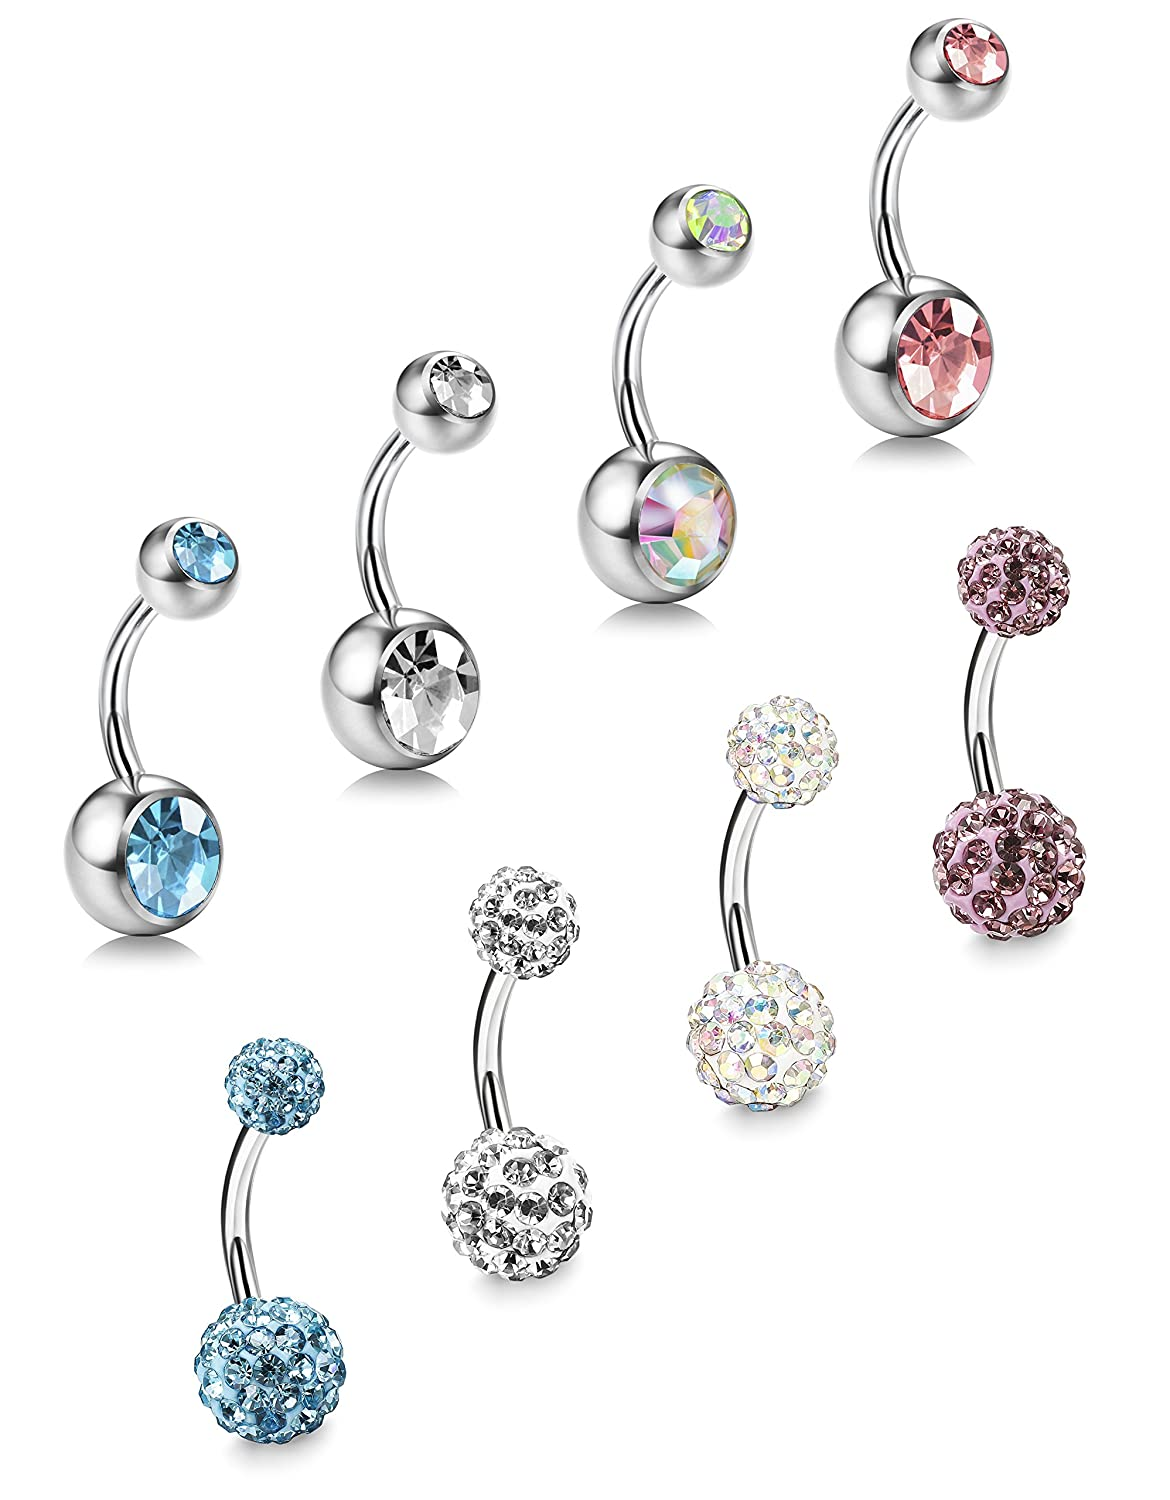 Orazio 4Pcs 14G Stainless Steel Belly Button Rings Screw Navel Bars Body Piercing